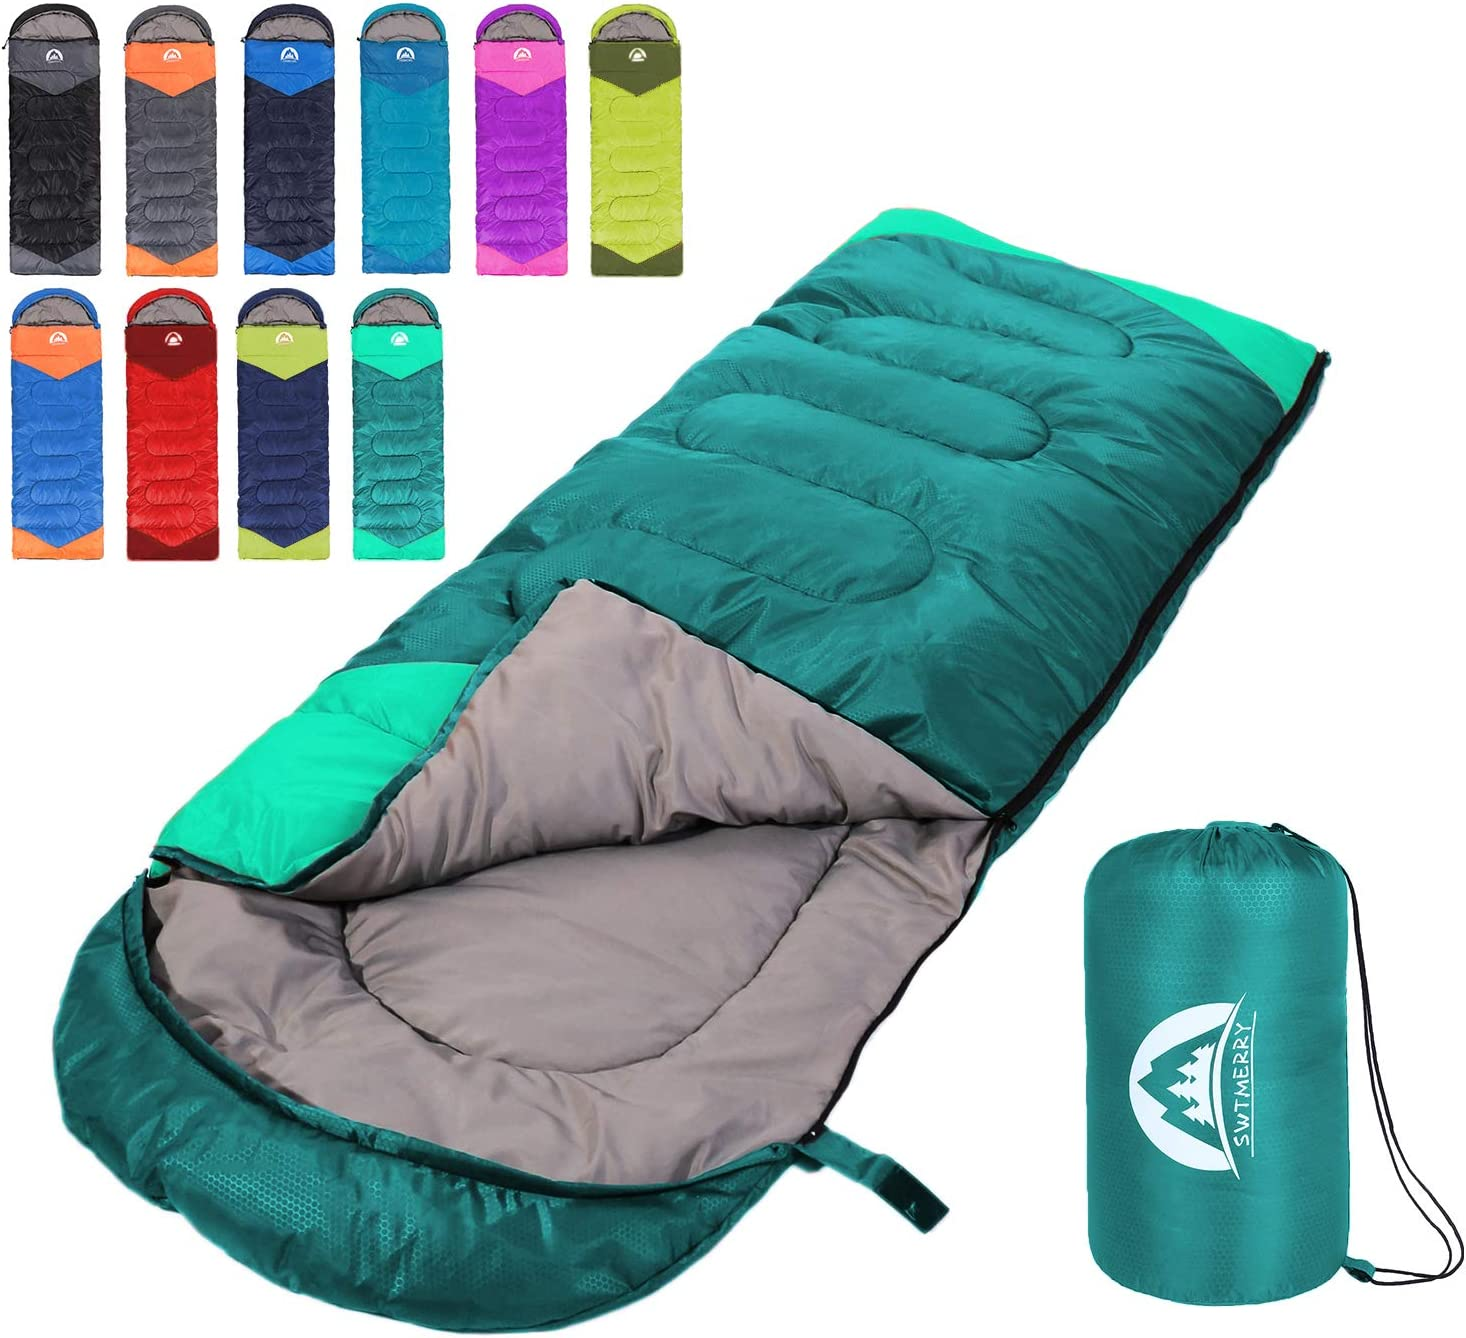 Sleeping Bag 3 Seasons (Summer, Spring, Fall) Warm & Cool Weather - Lightweight,Waterproof Indoor & Outdoor Use for Kids, Teens & Adults for Hiking and Camping